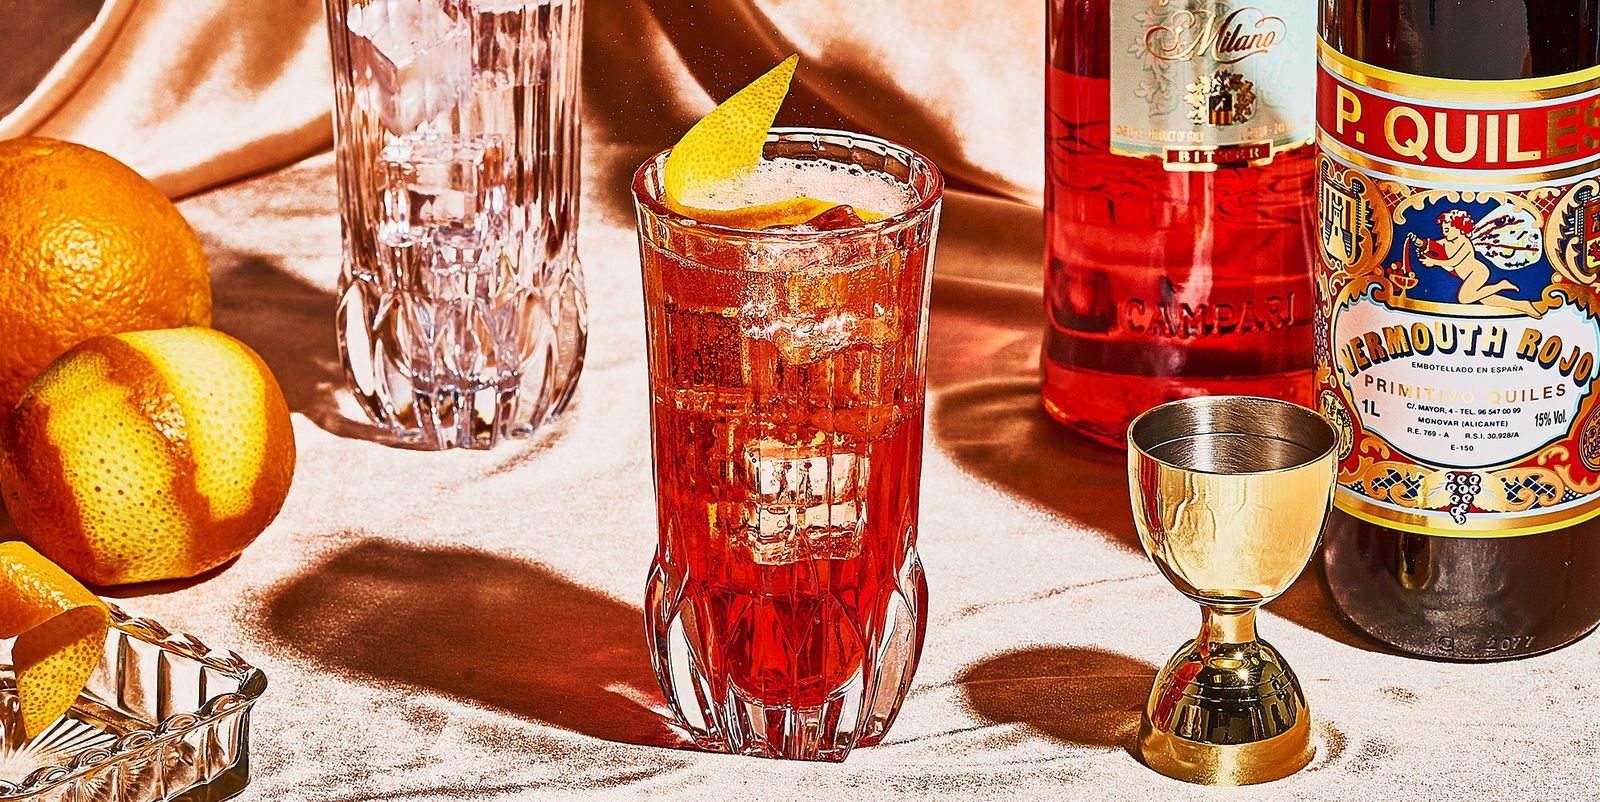 When A Negroni Seems Too Heavy Make Yourself An Americano Cocktail In 2020 Old Fashion Drink Recipe Americano Negroni